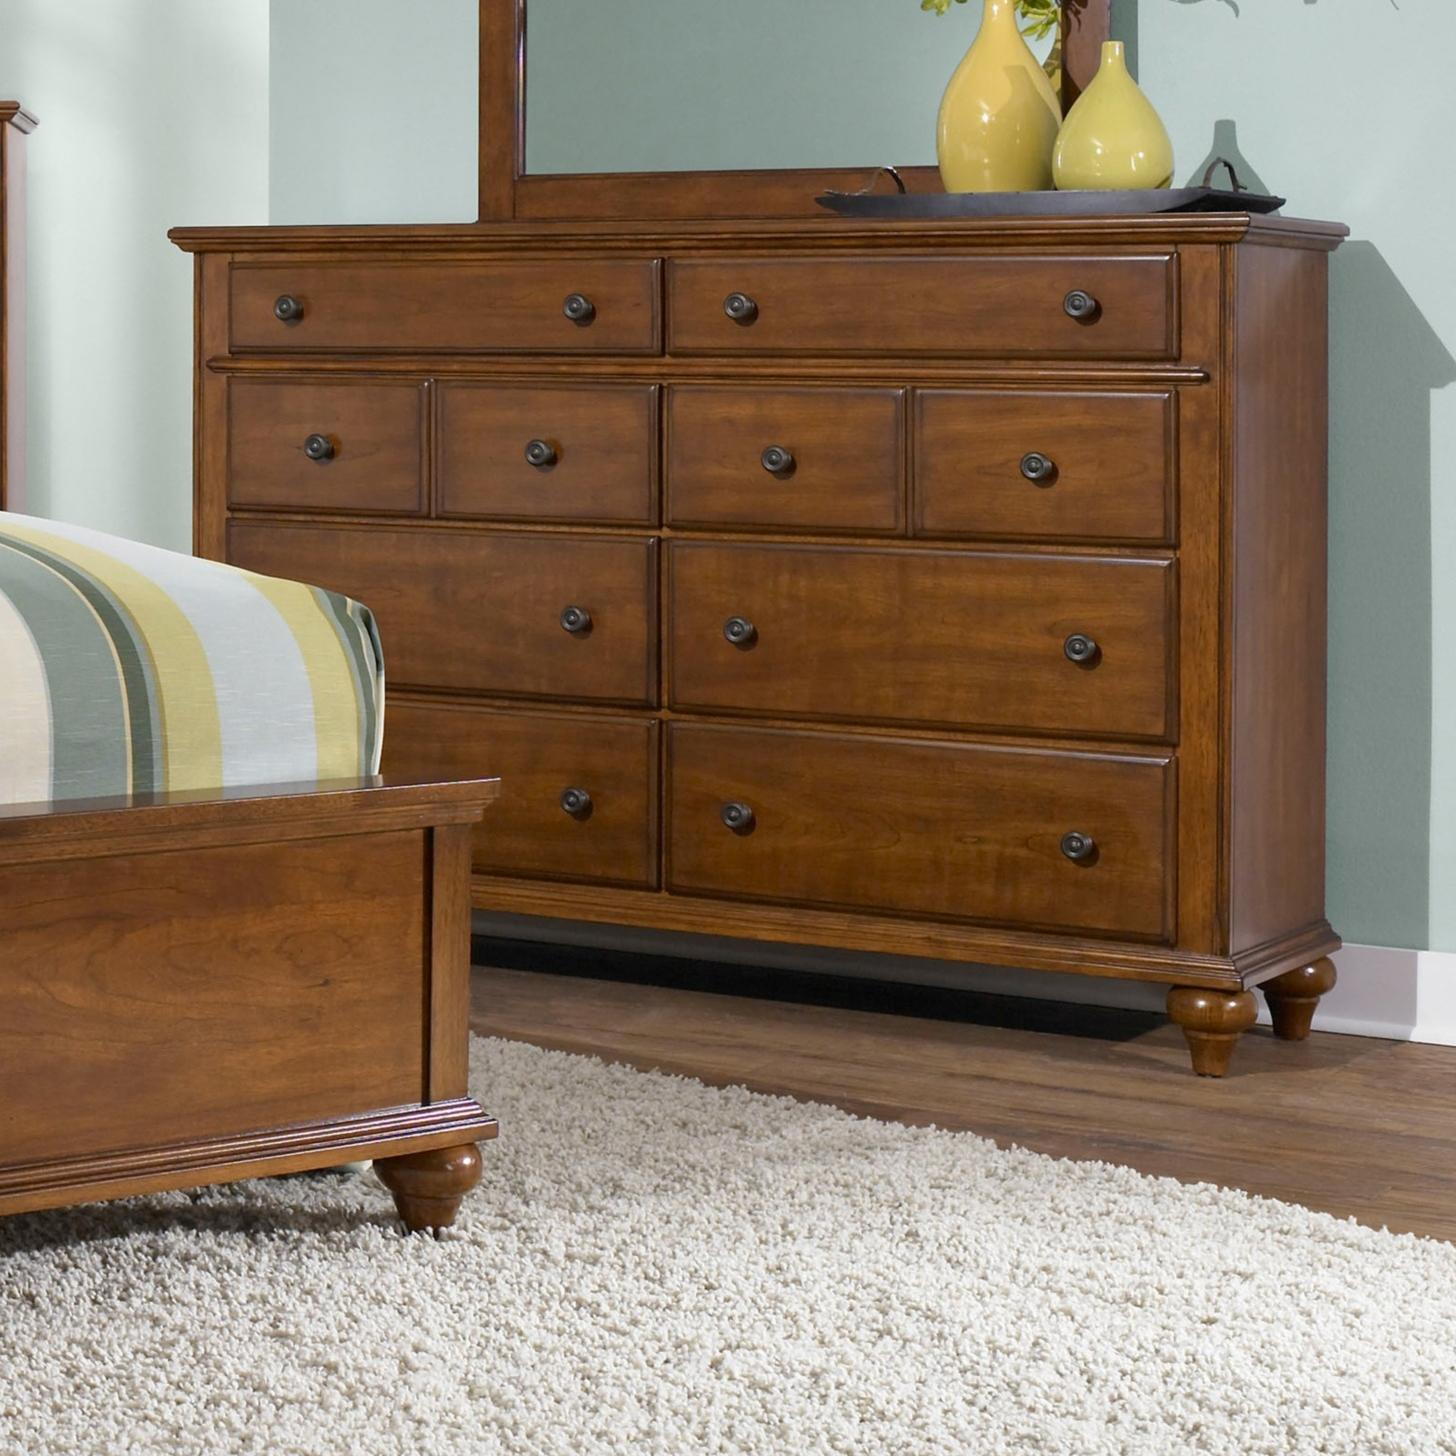 Broyhill Furniture Hayden Place Drawer Dresser - Item Number: 4648-230